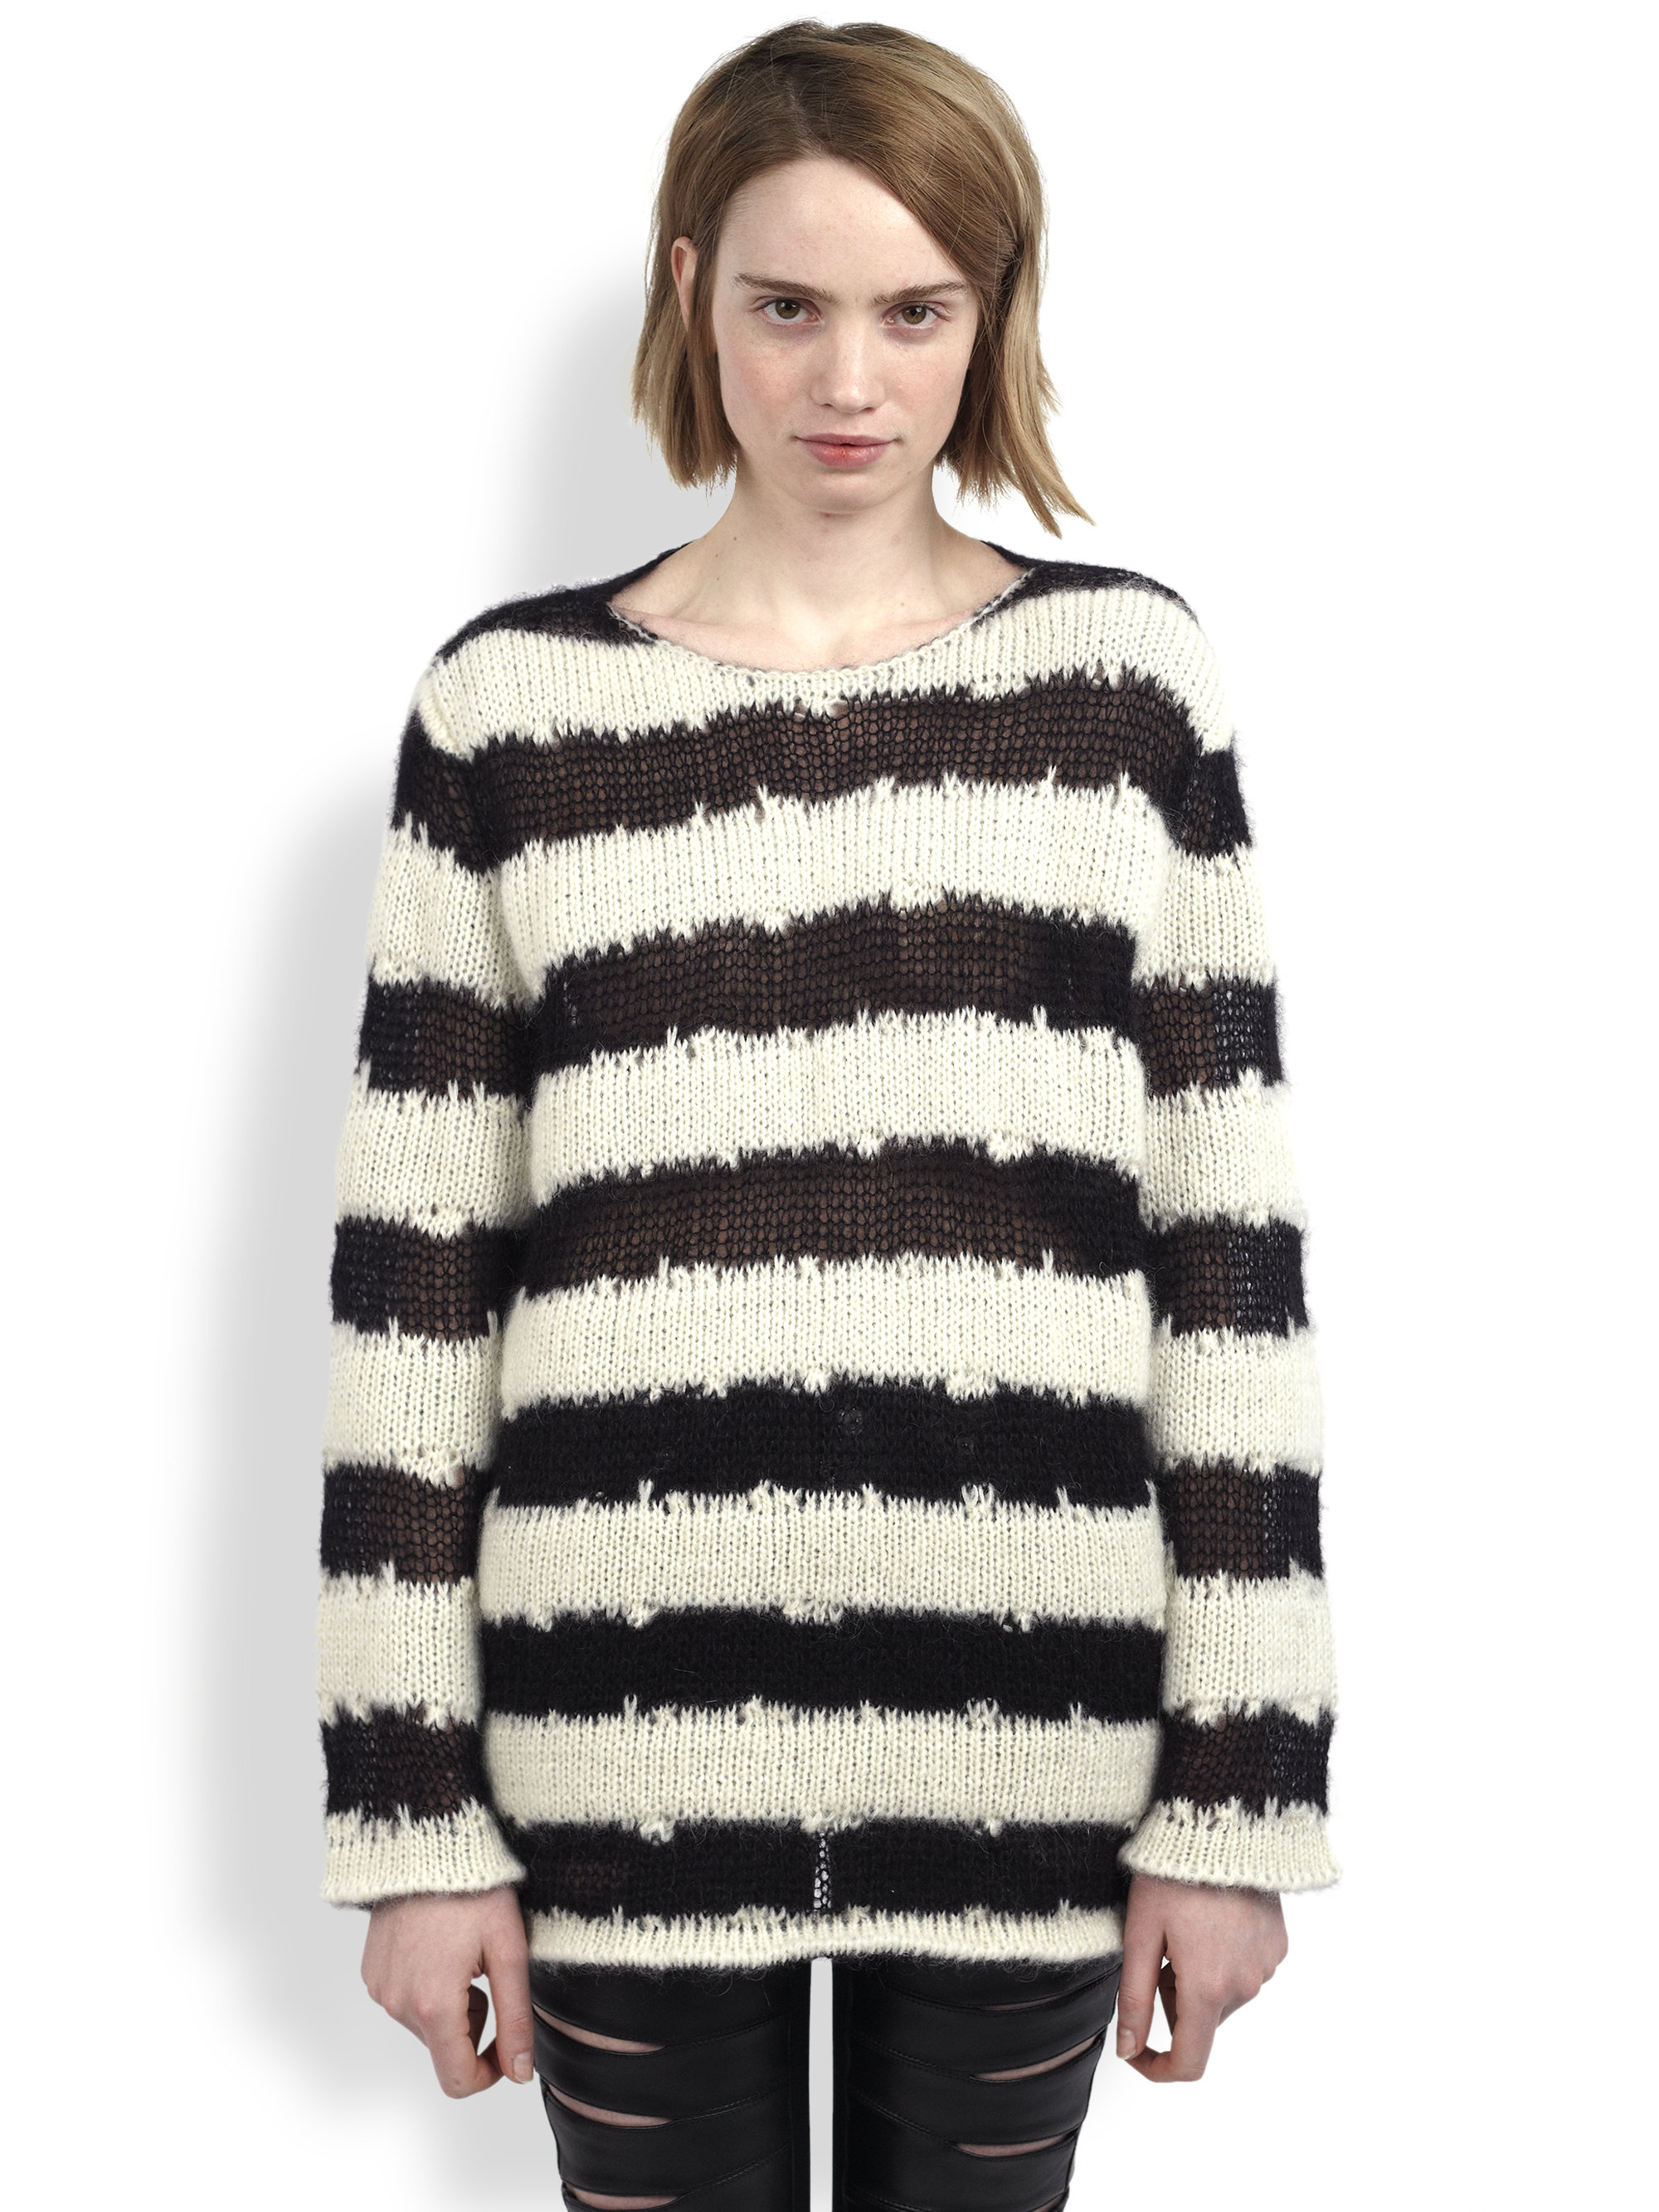 Saint laurent Oversized Striped Sweater in Black | Lyst